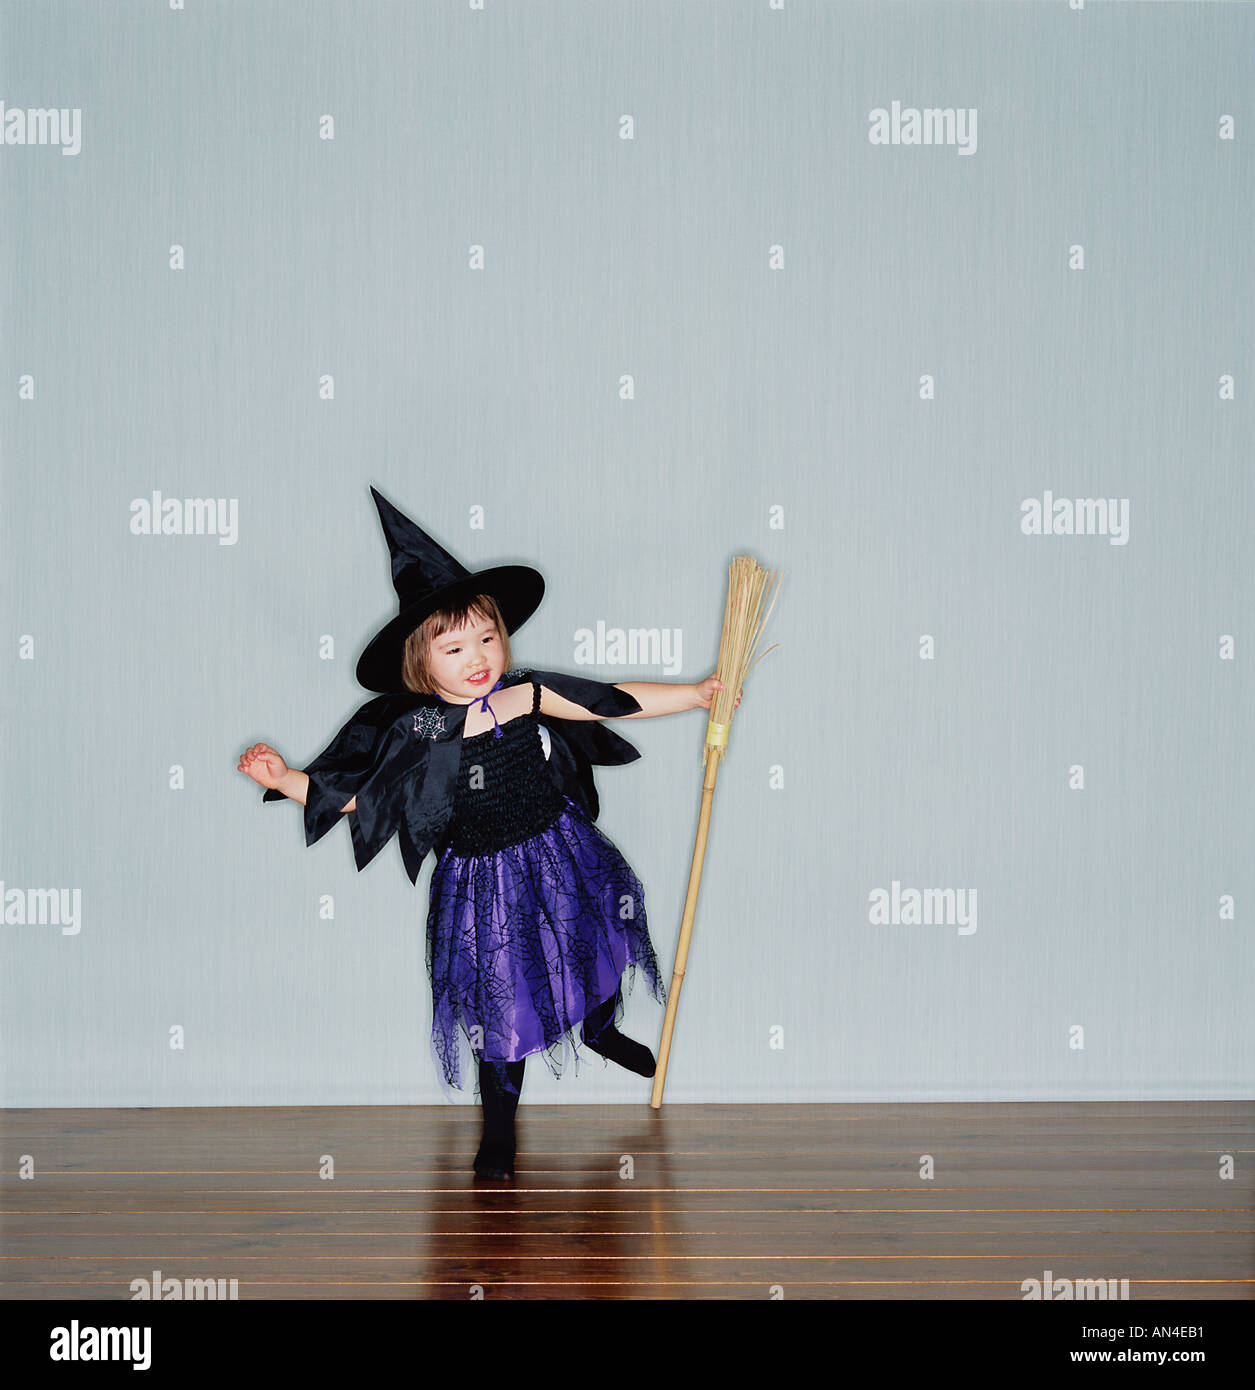 KIND IN WITCHS OUTFIT Stockbild